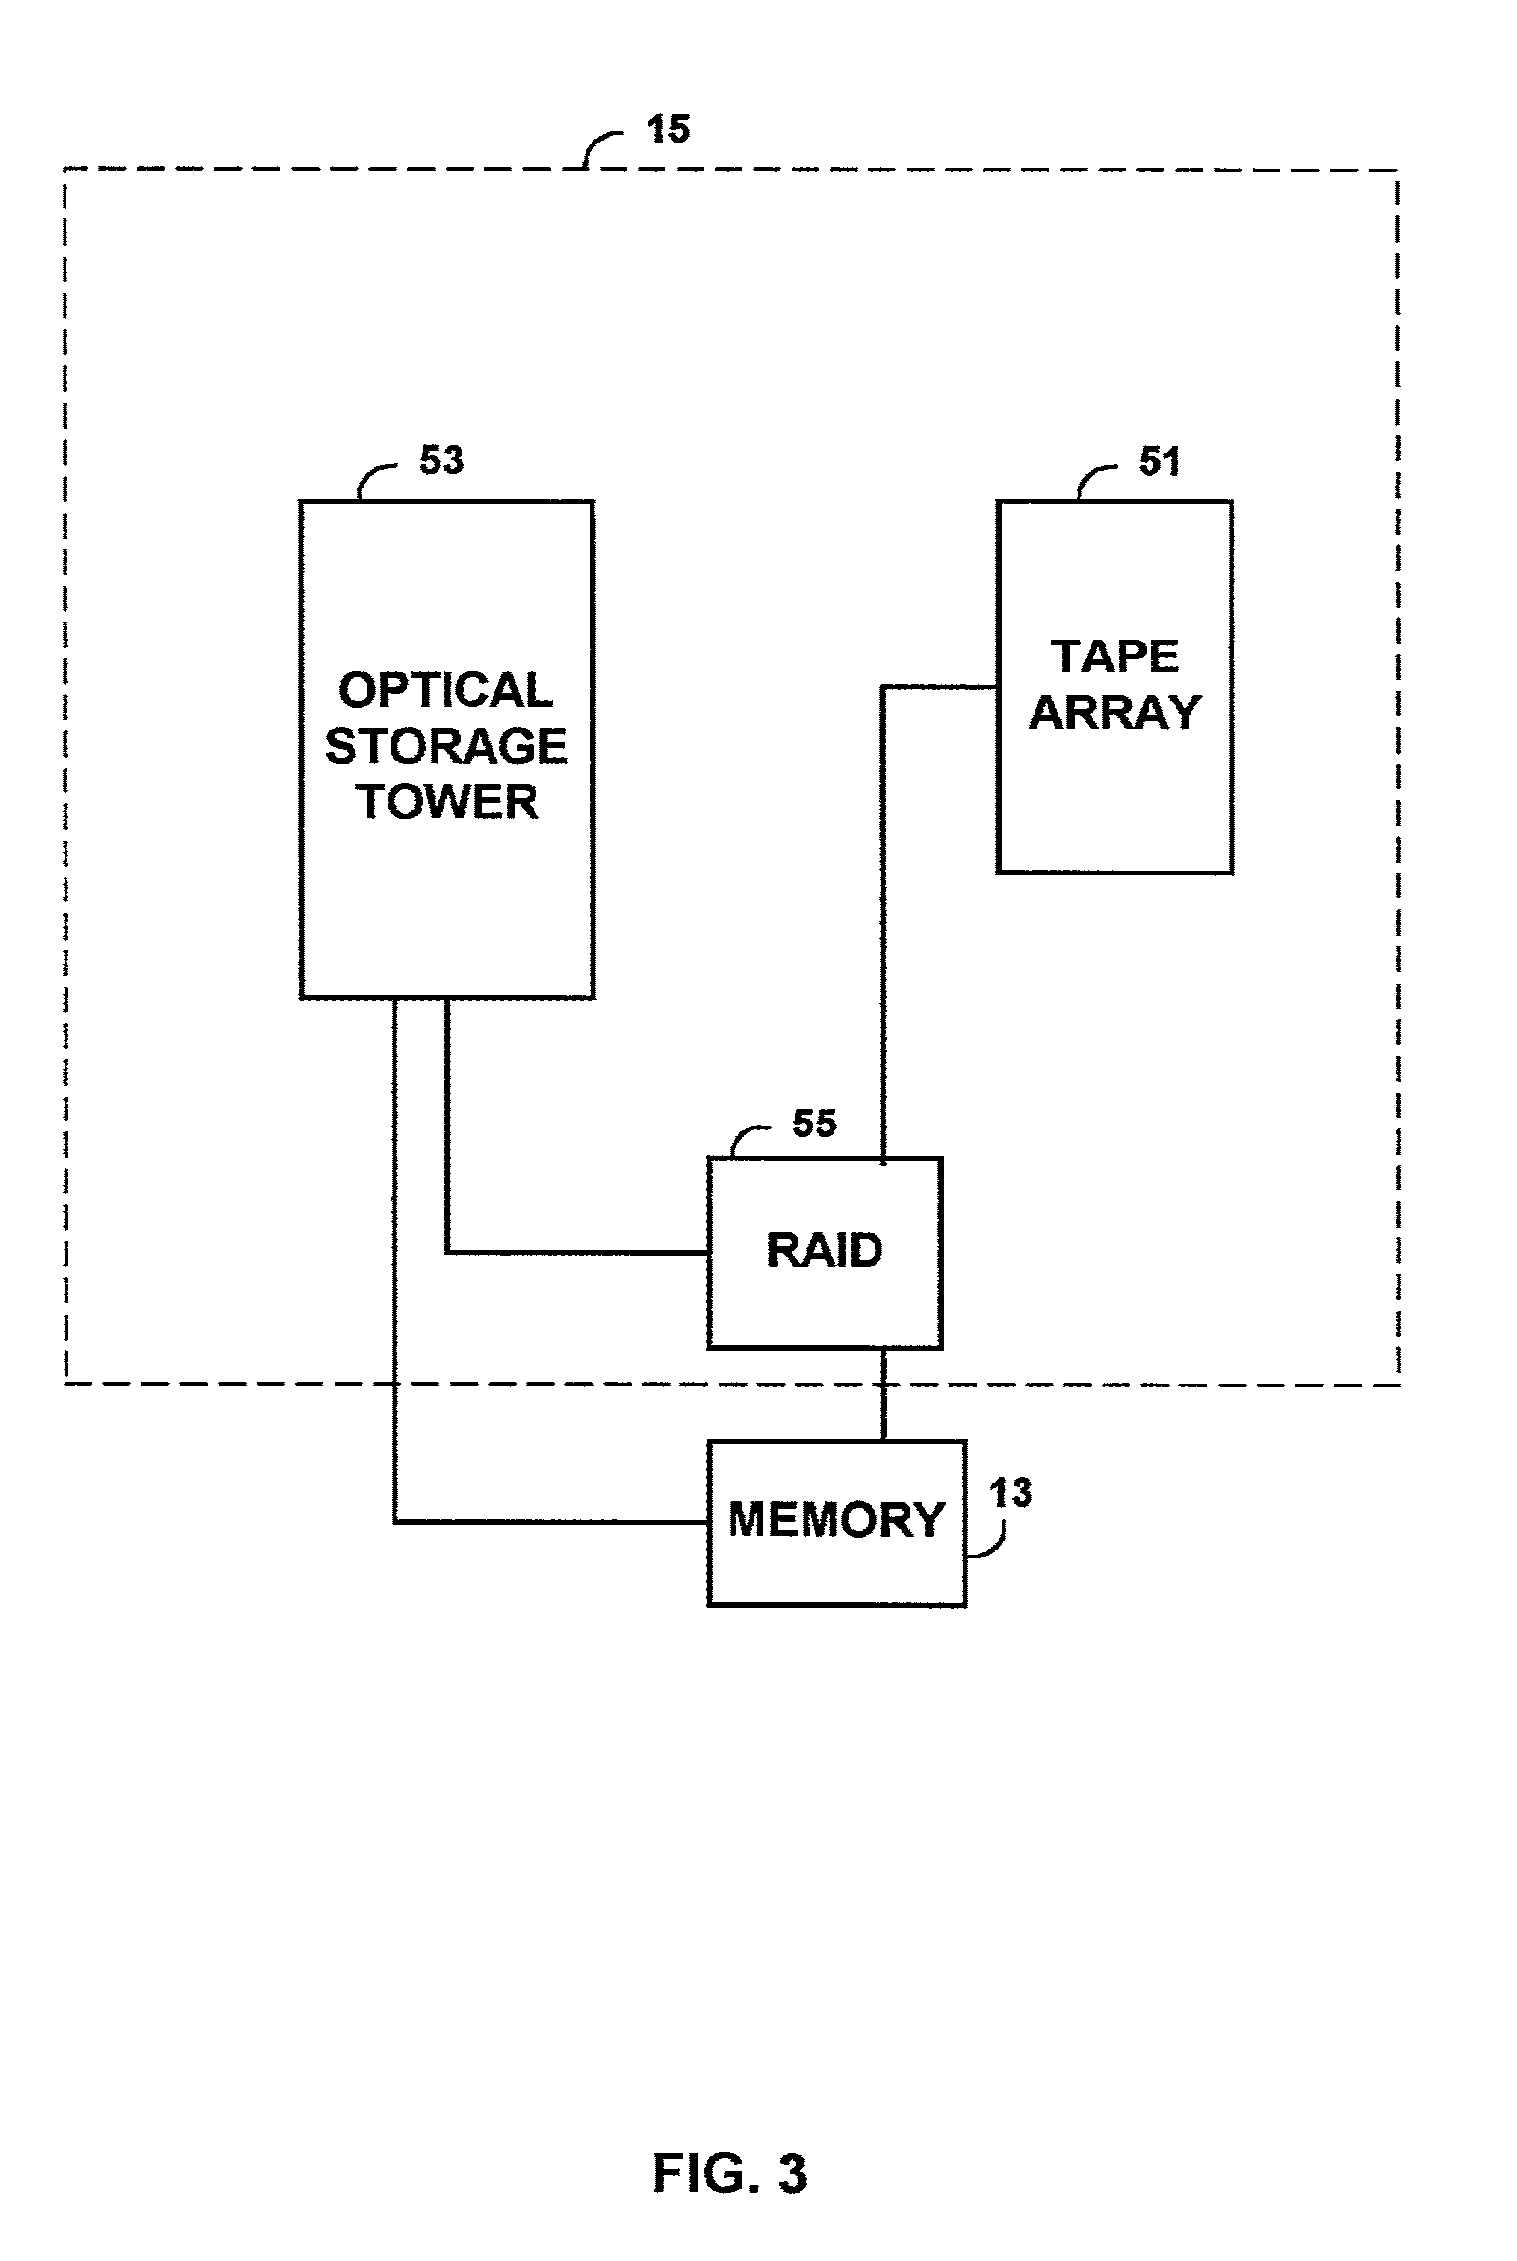 hight resolution of us9055319b2 interactive guide with recording google patents block diagram sbd dvd player recorder ticom